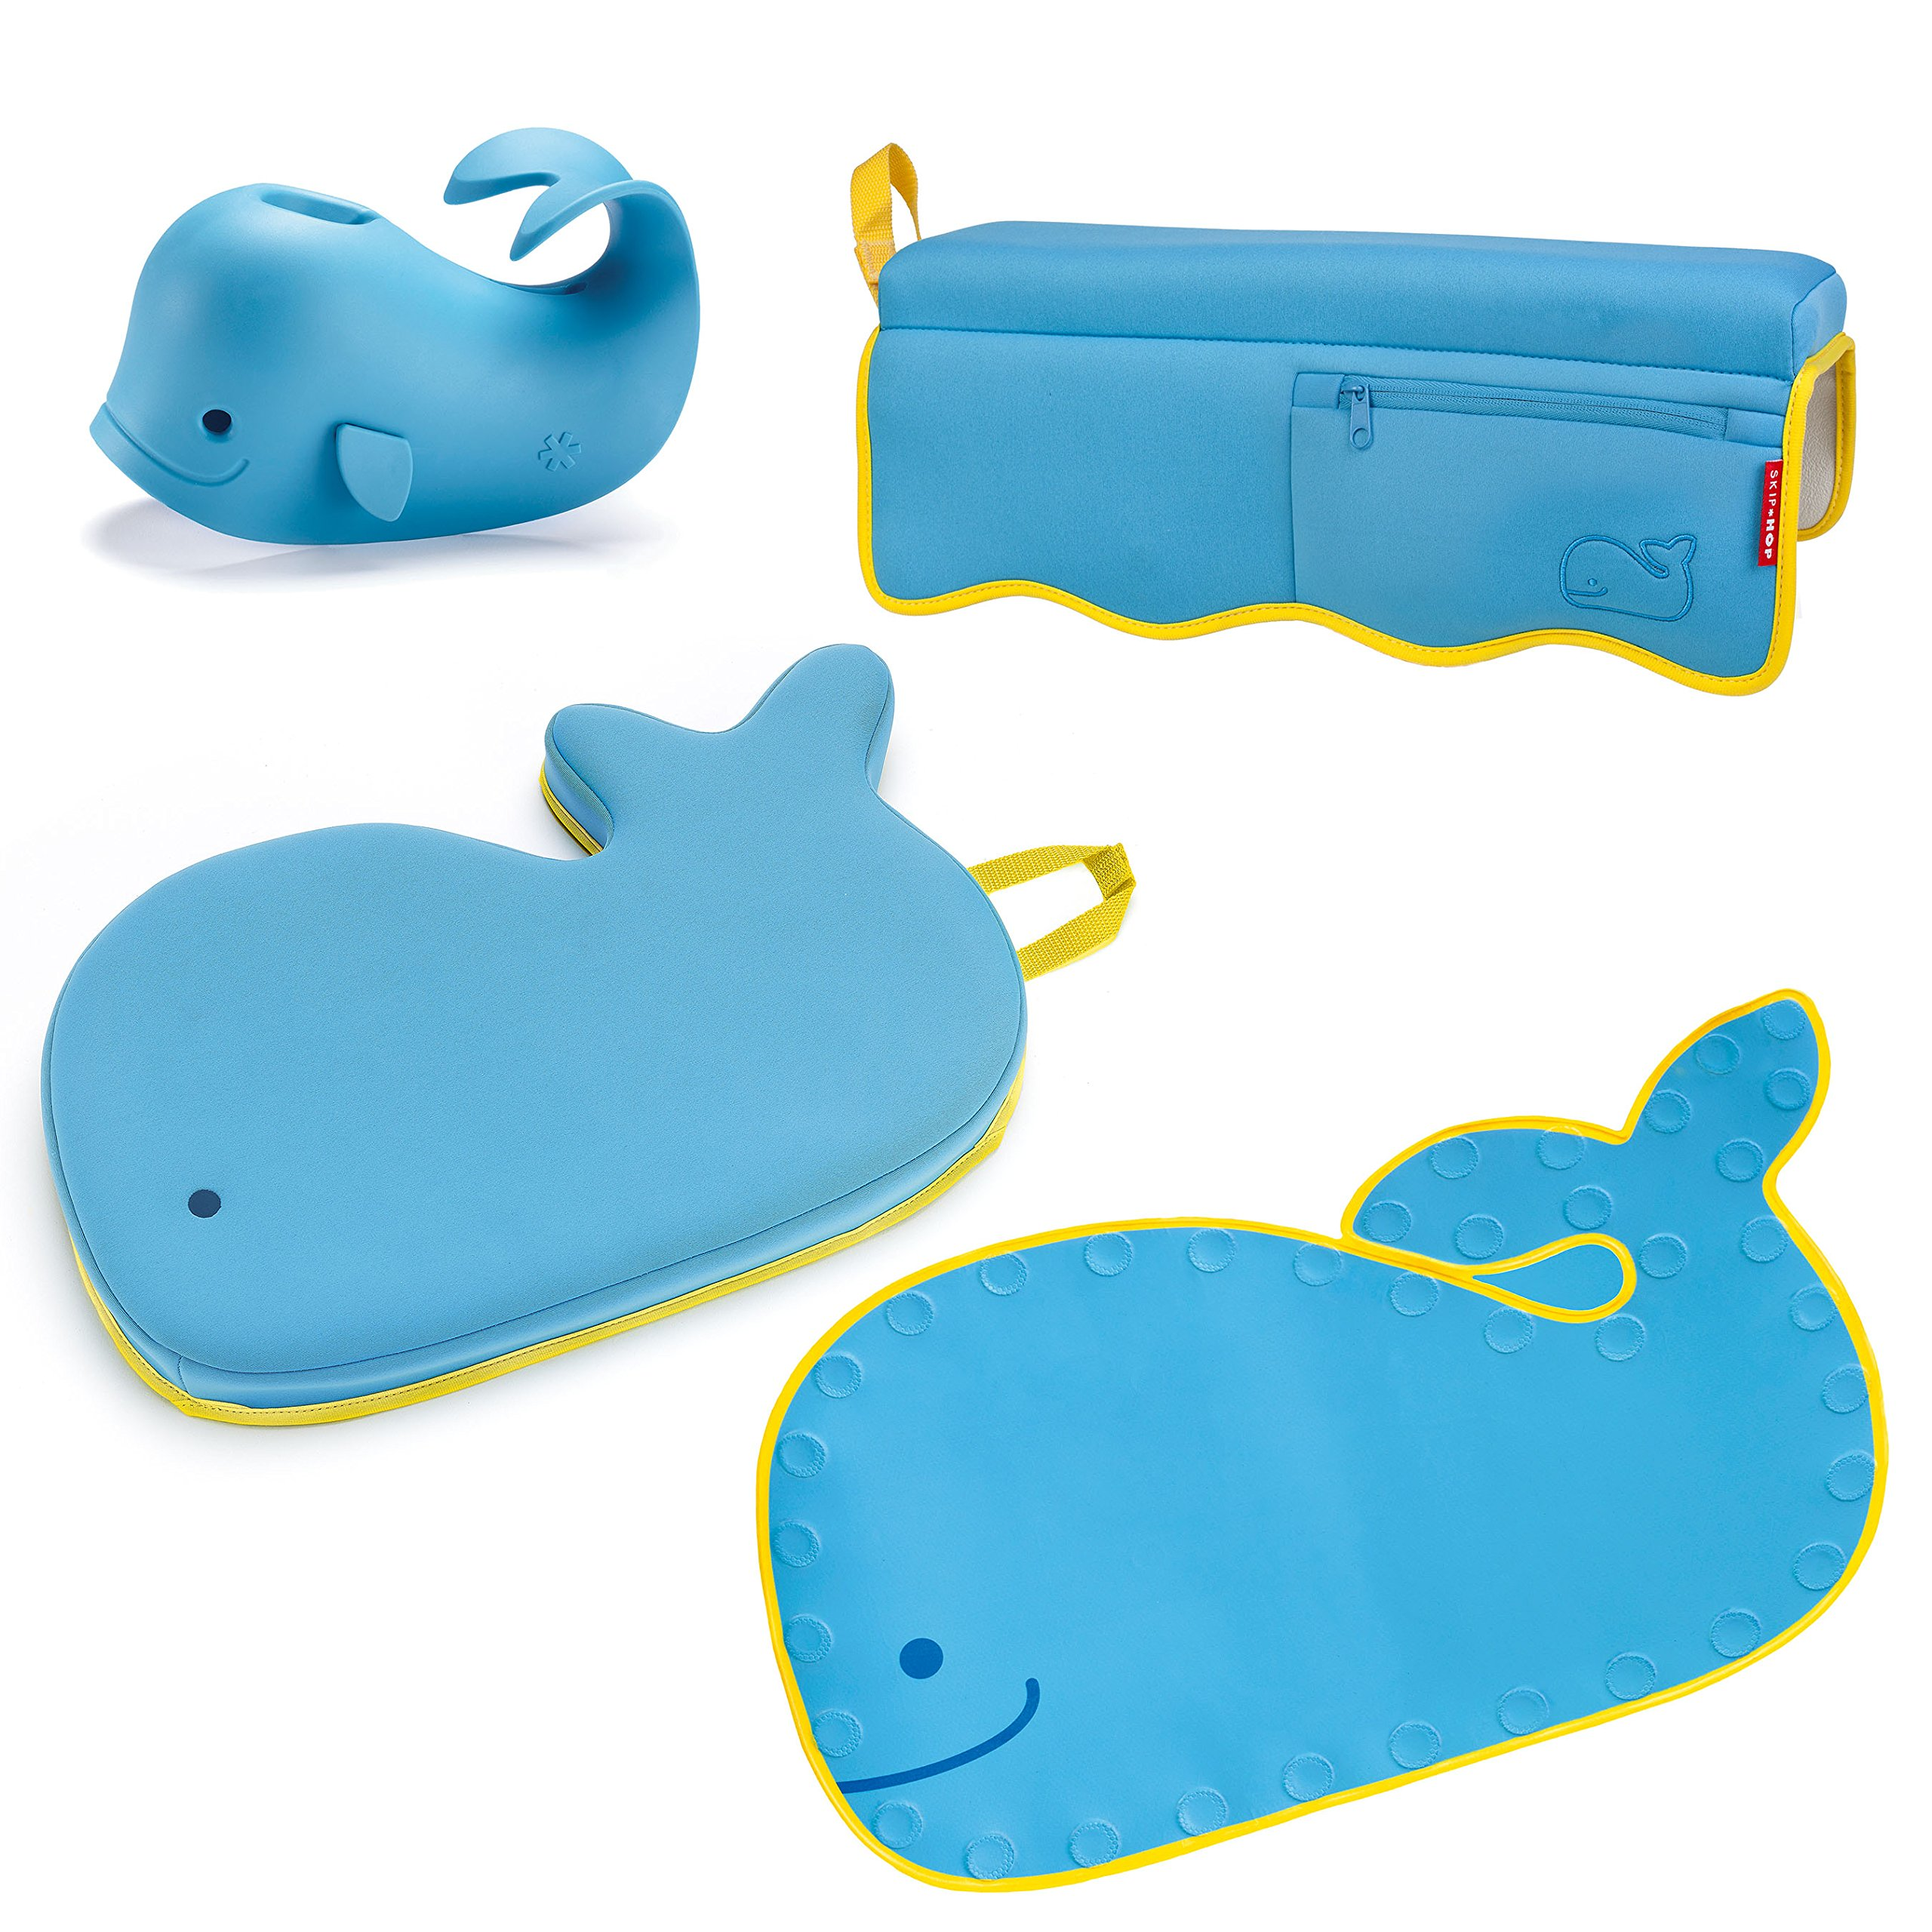 Skip Hop Moby Baby Bath Set, Four Bathtime Essentials - Spout Cover, Bath Kneeler, Elbow Pad, And Bath Mat, Blue by Skip Hop